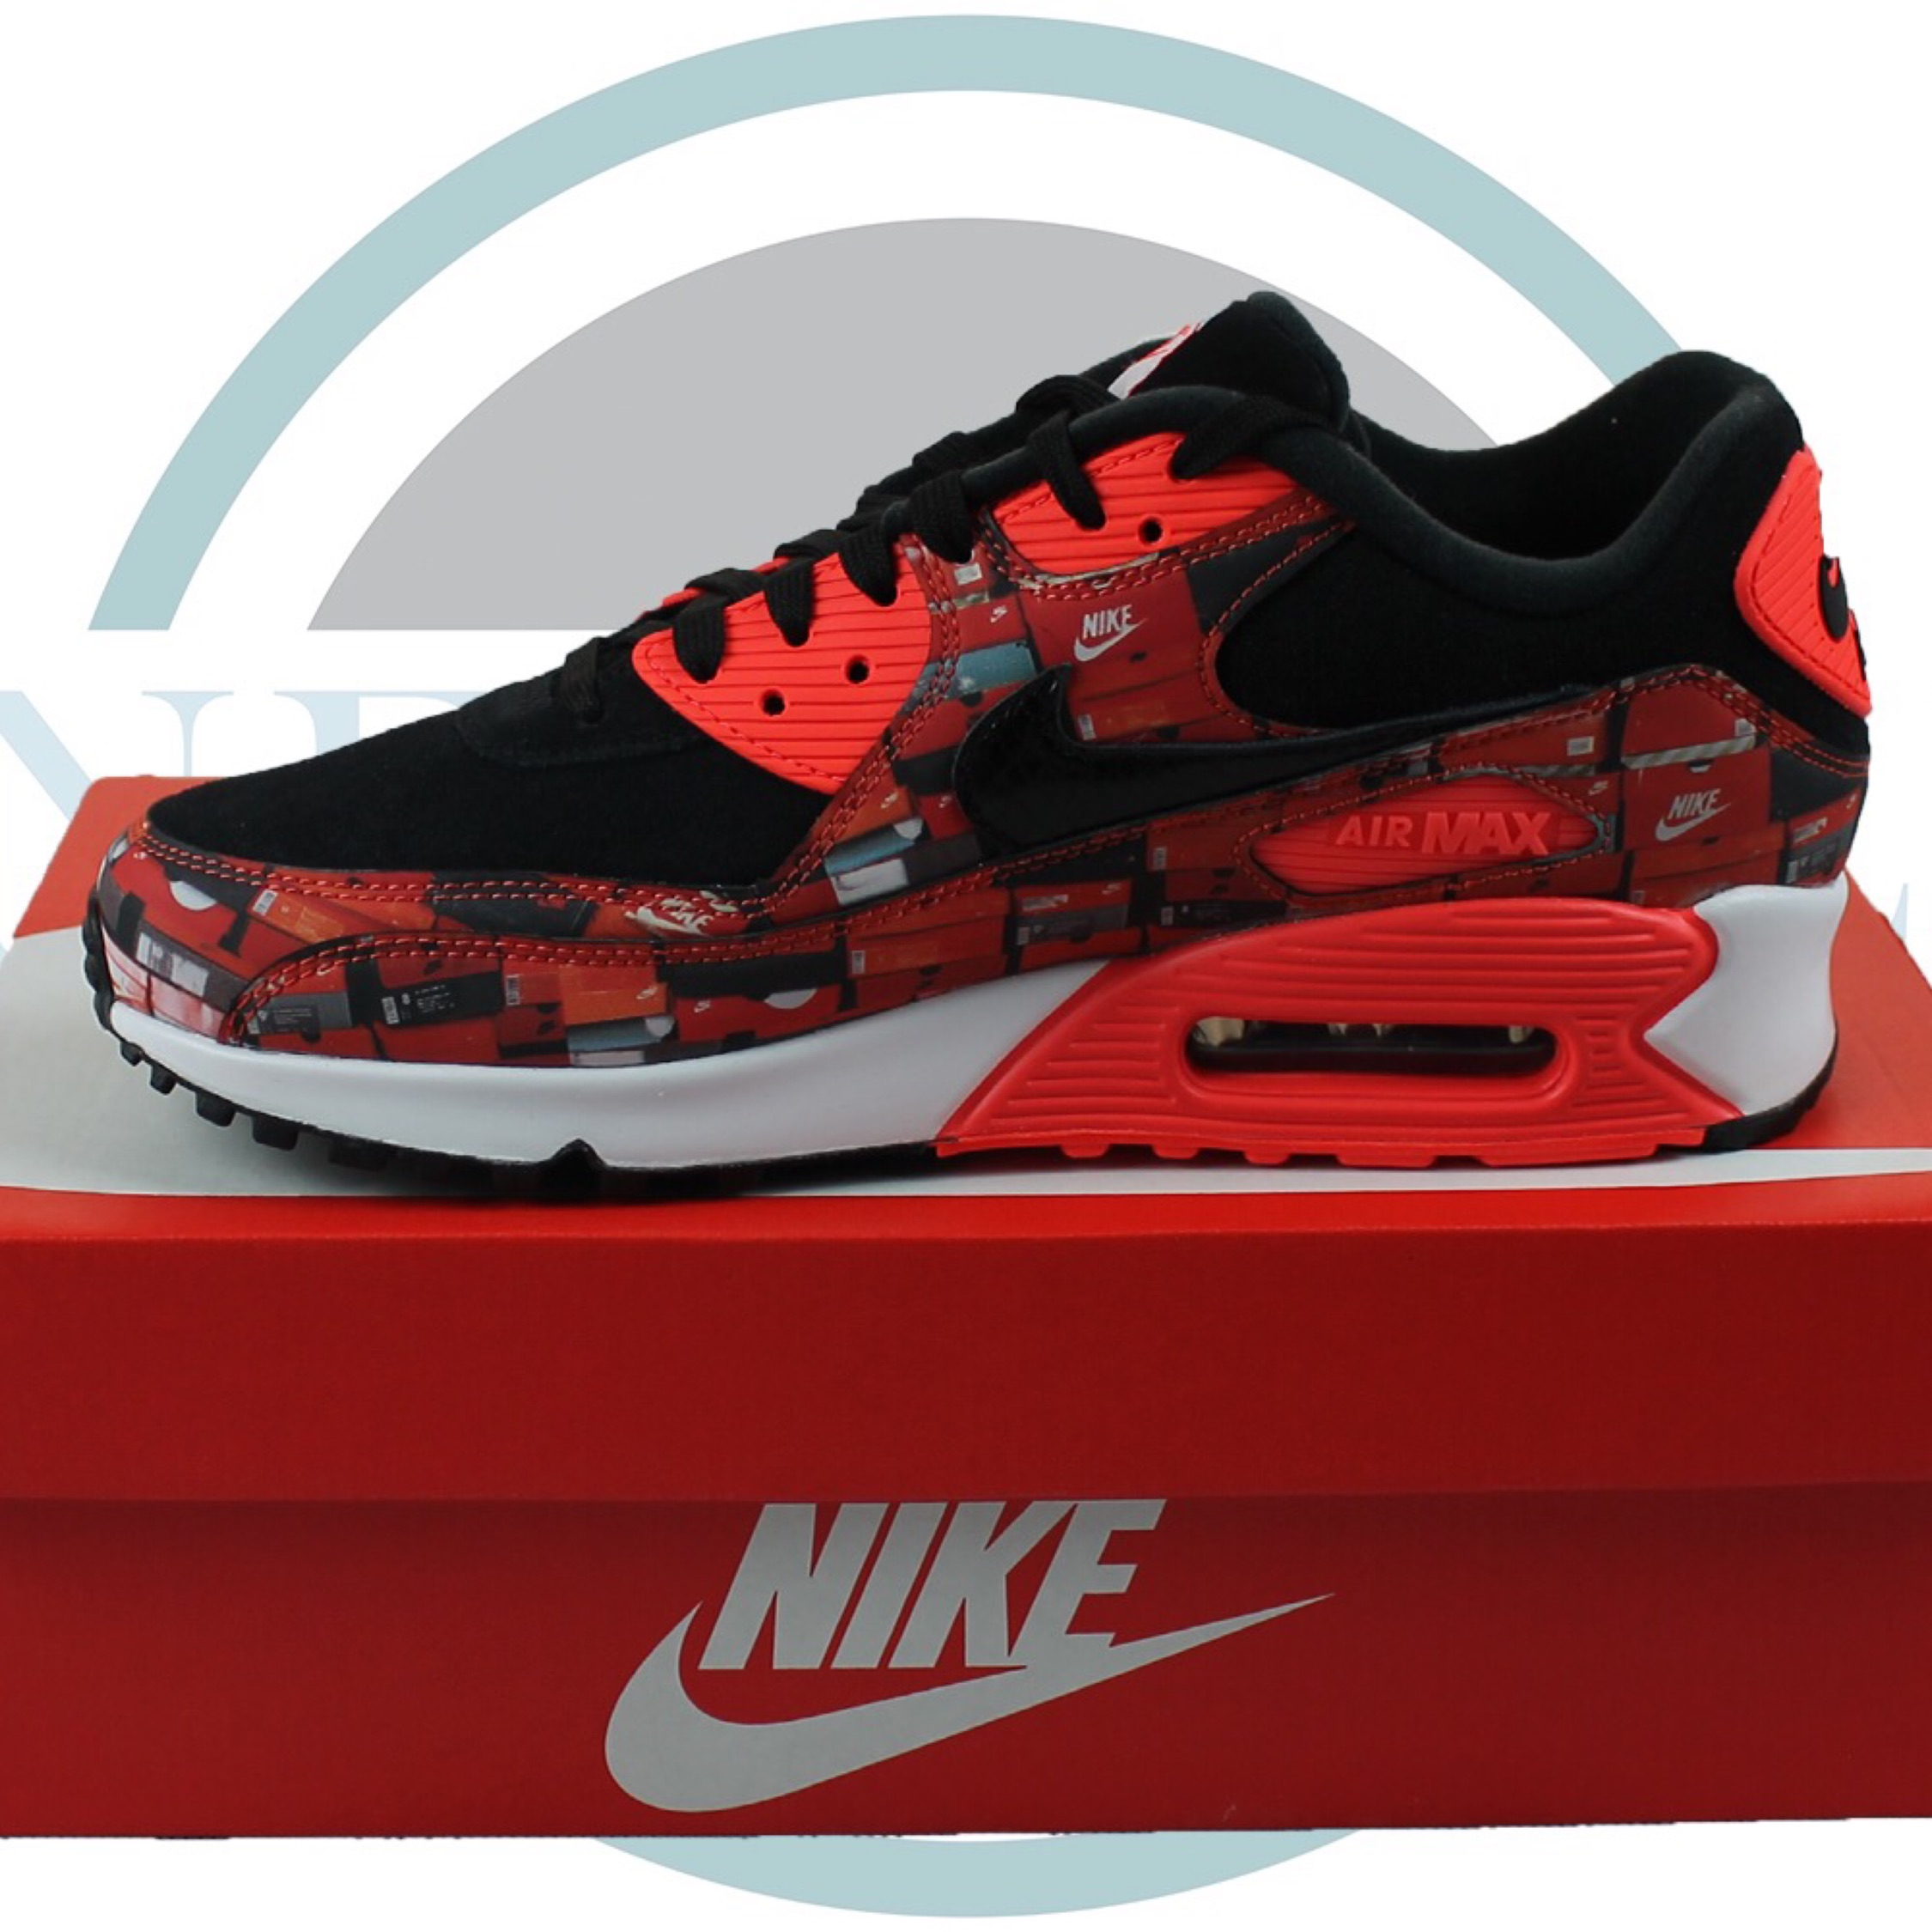 ad1c39c2e3 Nike Air Max 90 Atmos We Love Nike Bright Crimson